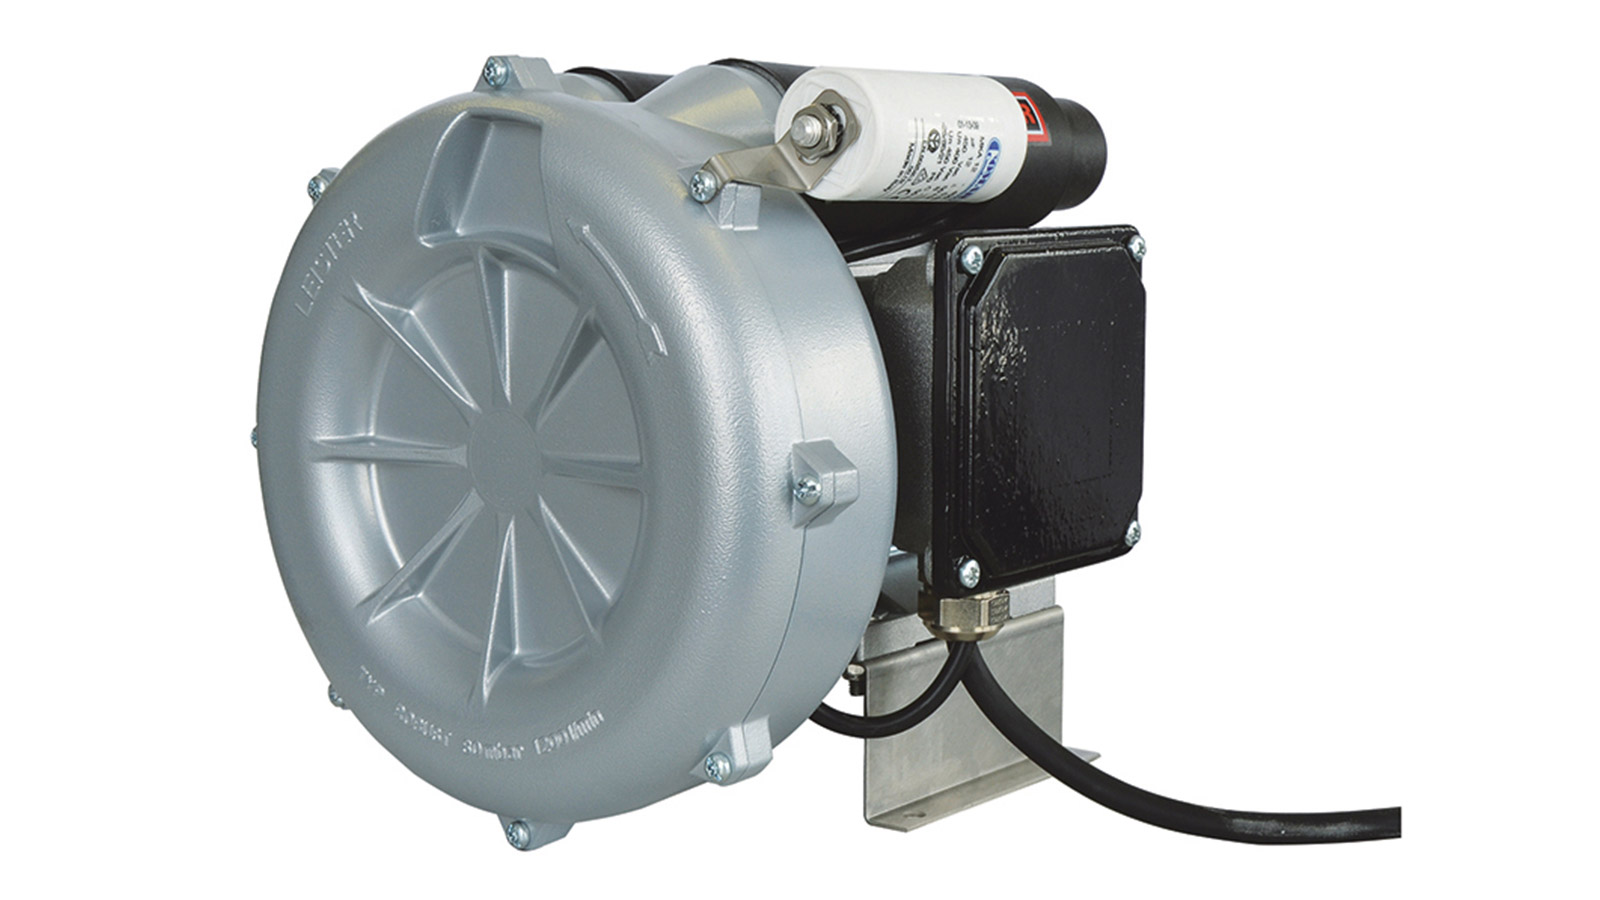 Air Blower Product : Robust